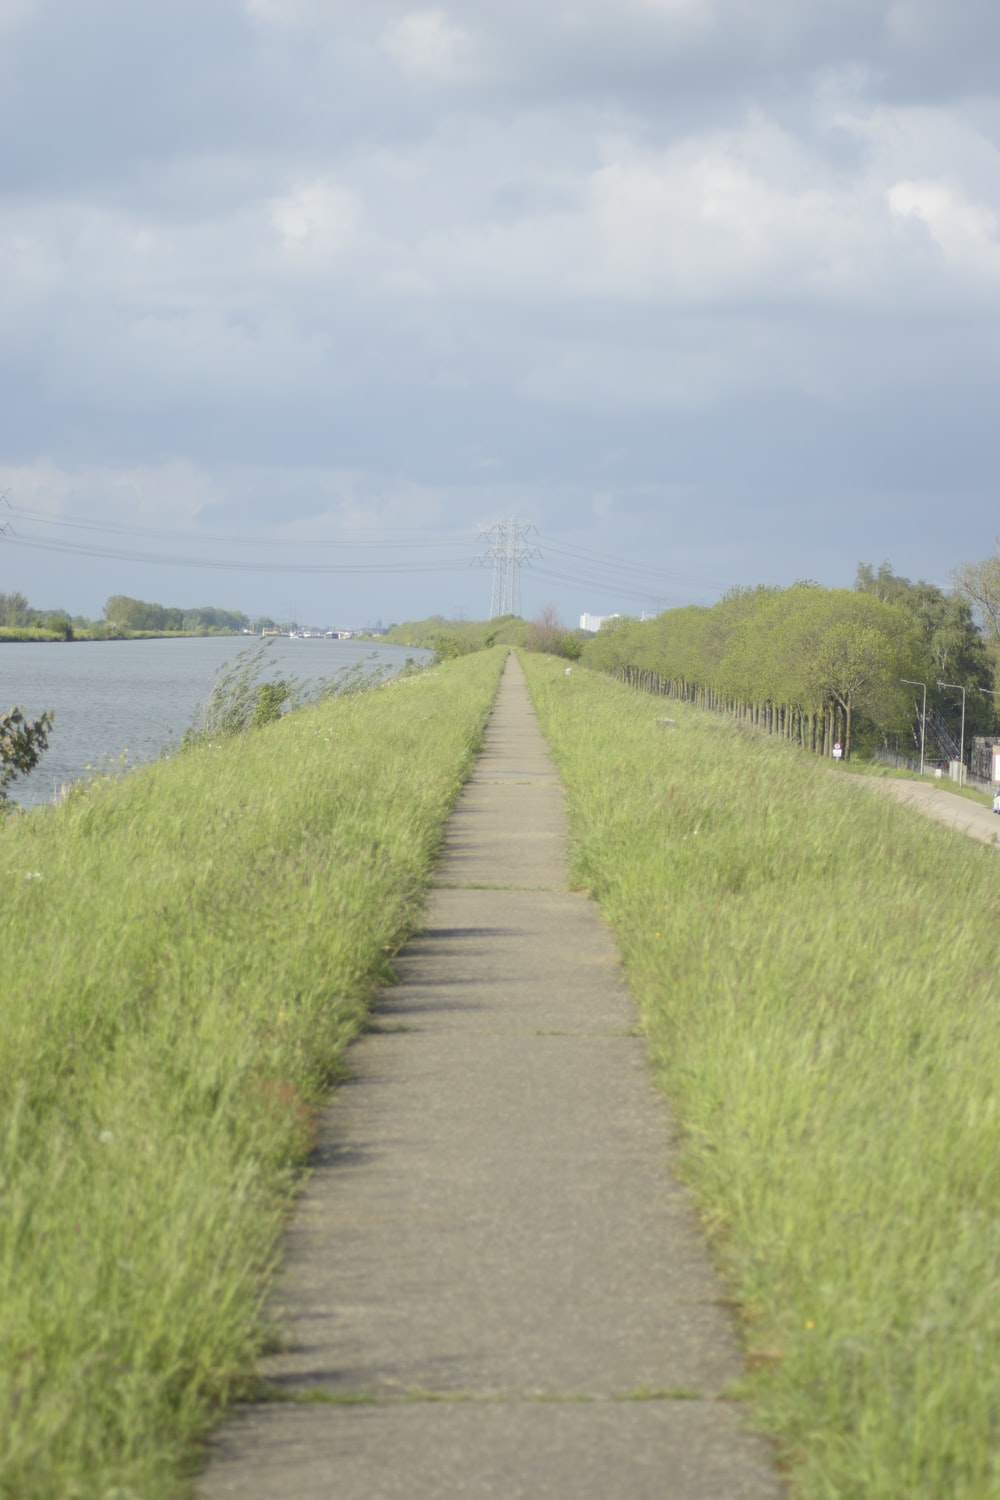 gray concrete pathway between green grass field near body of water during daytime